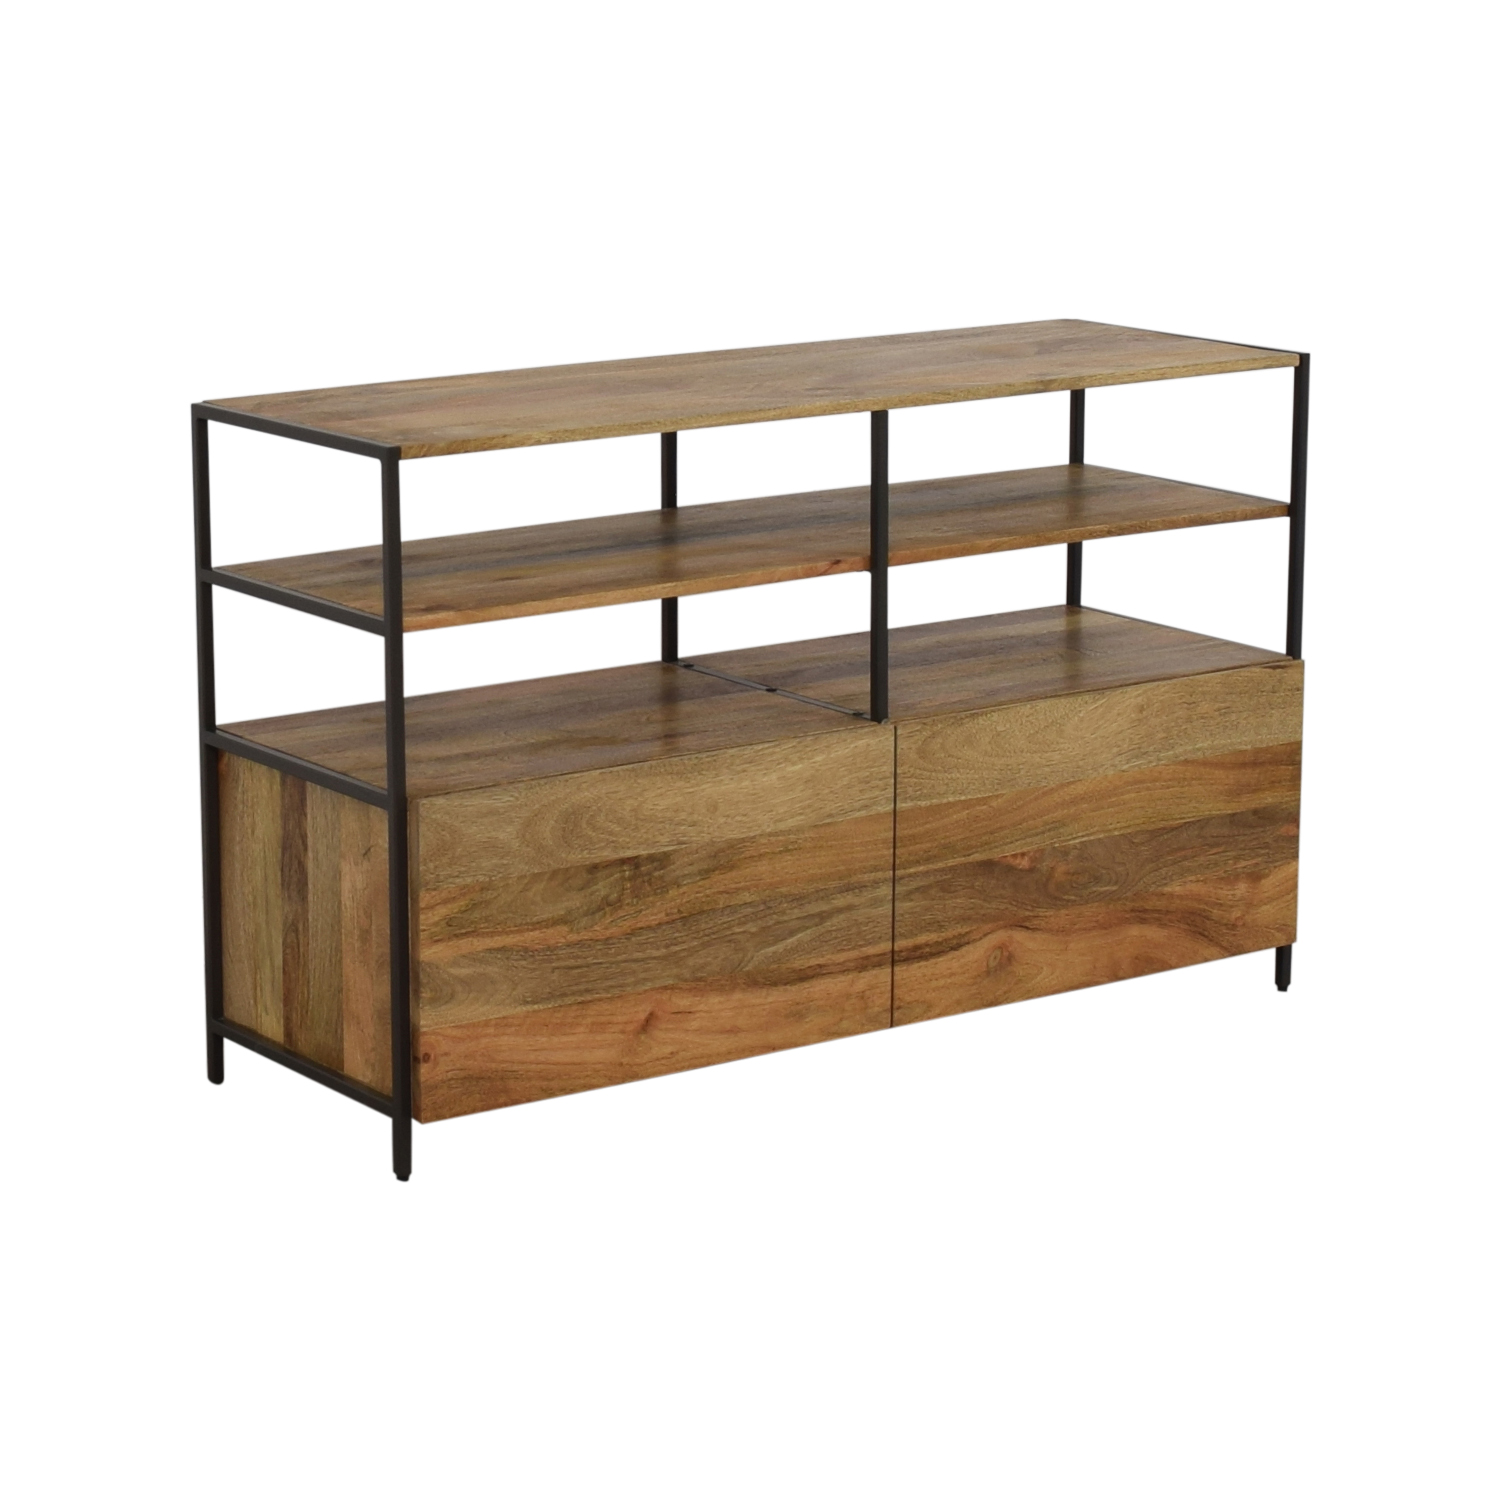 West Elm West Elm Industrial Modular Media Console for sale